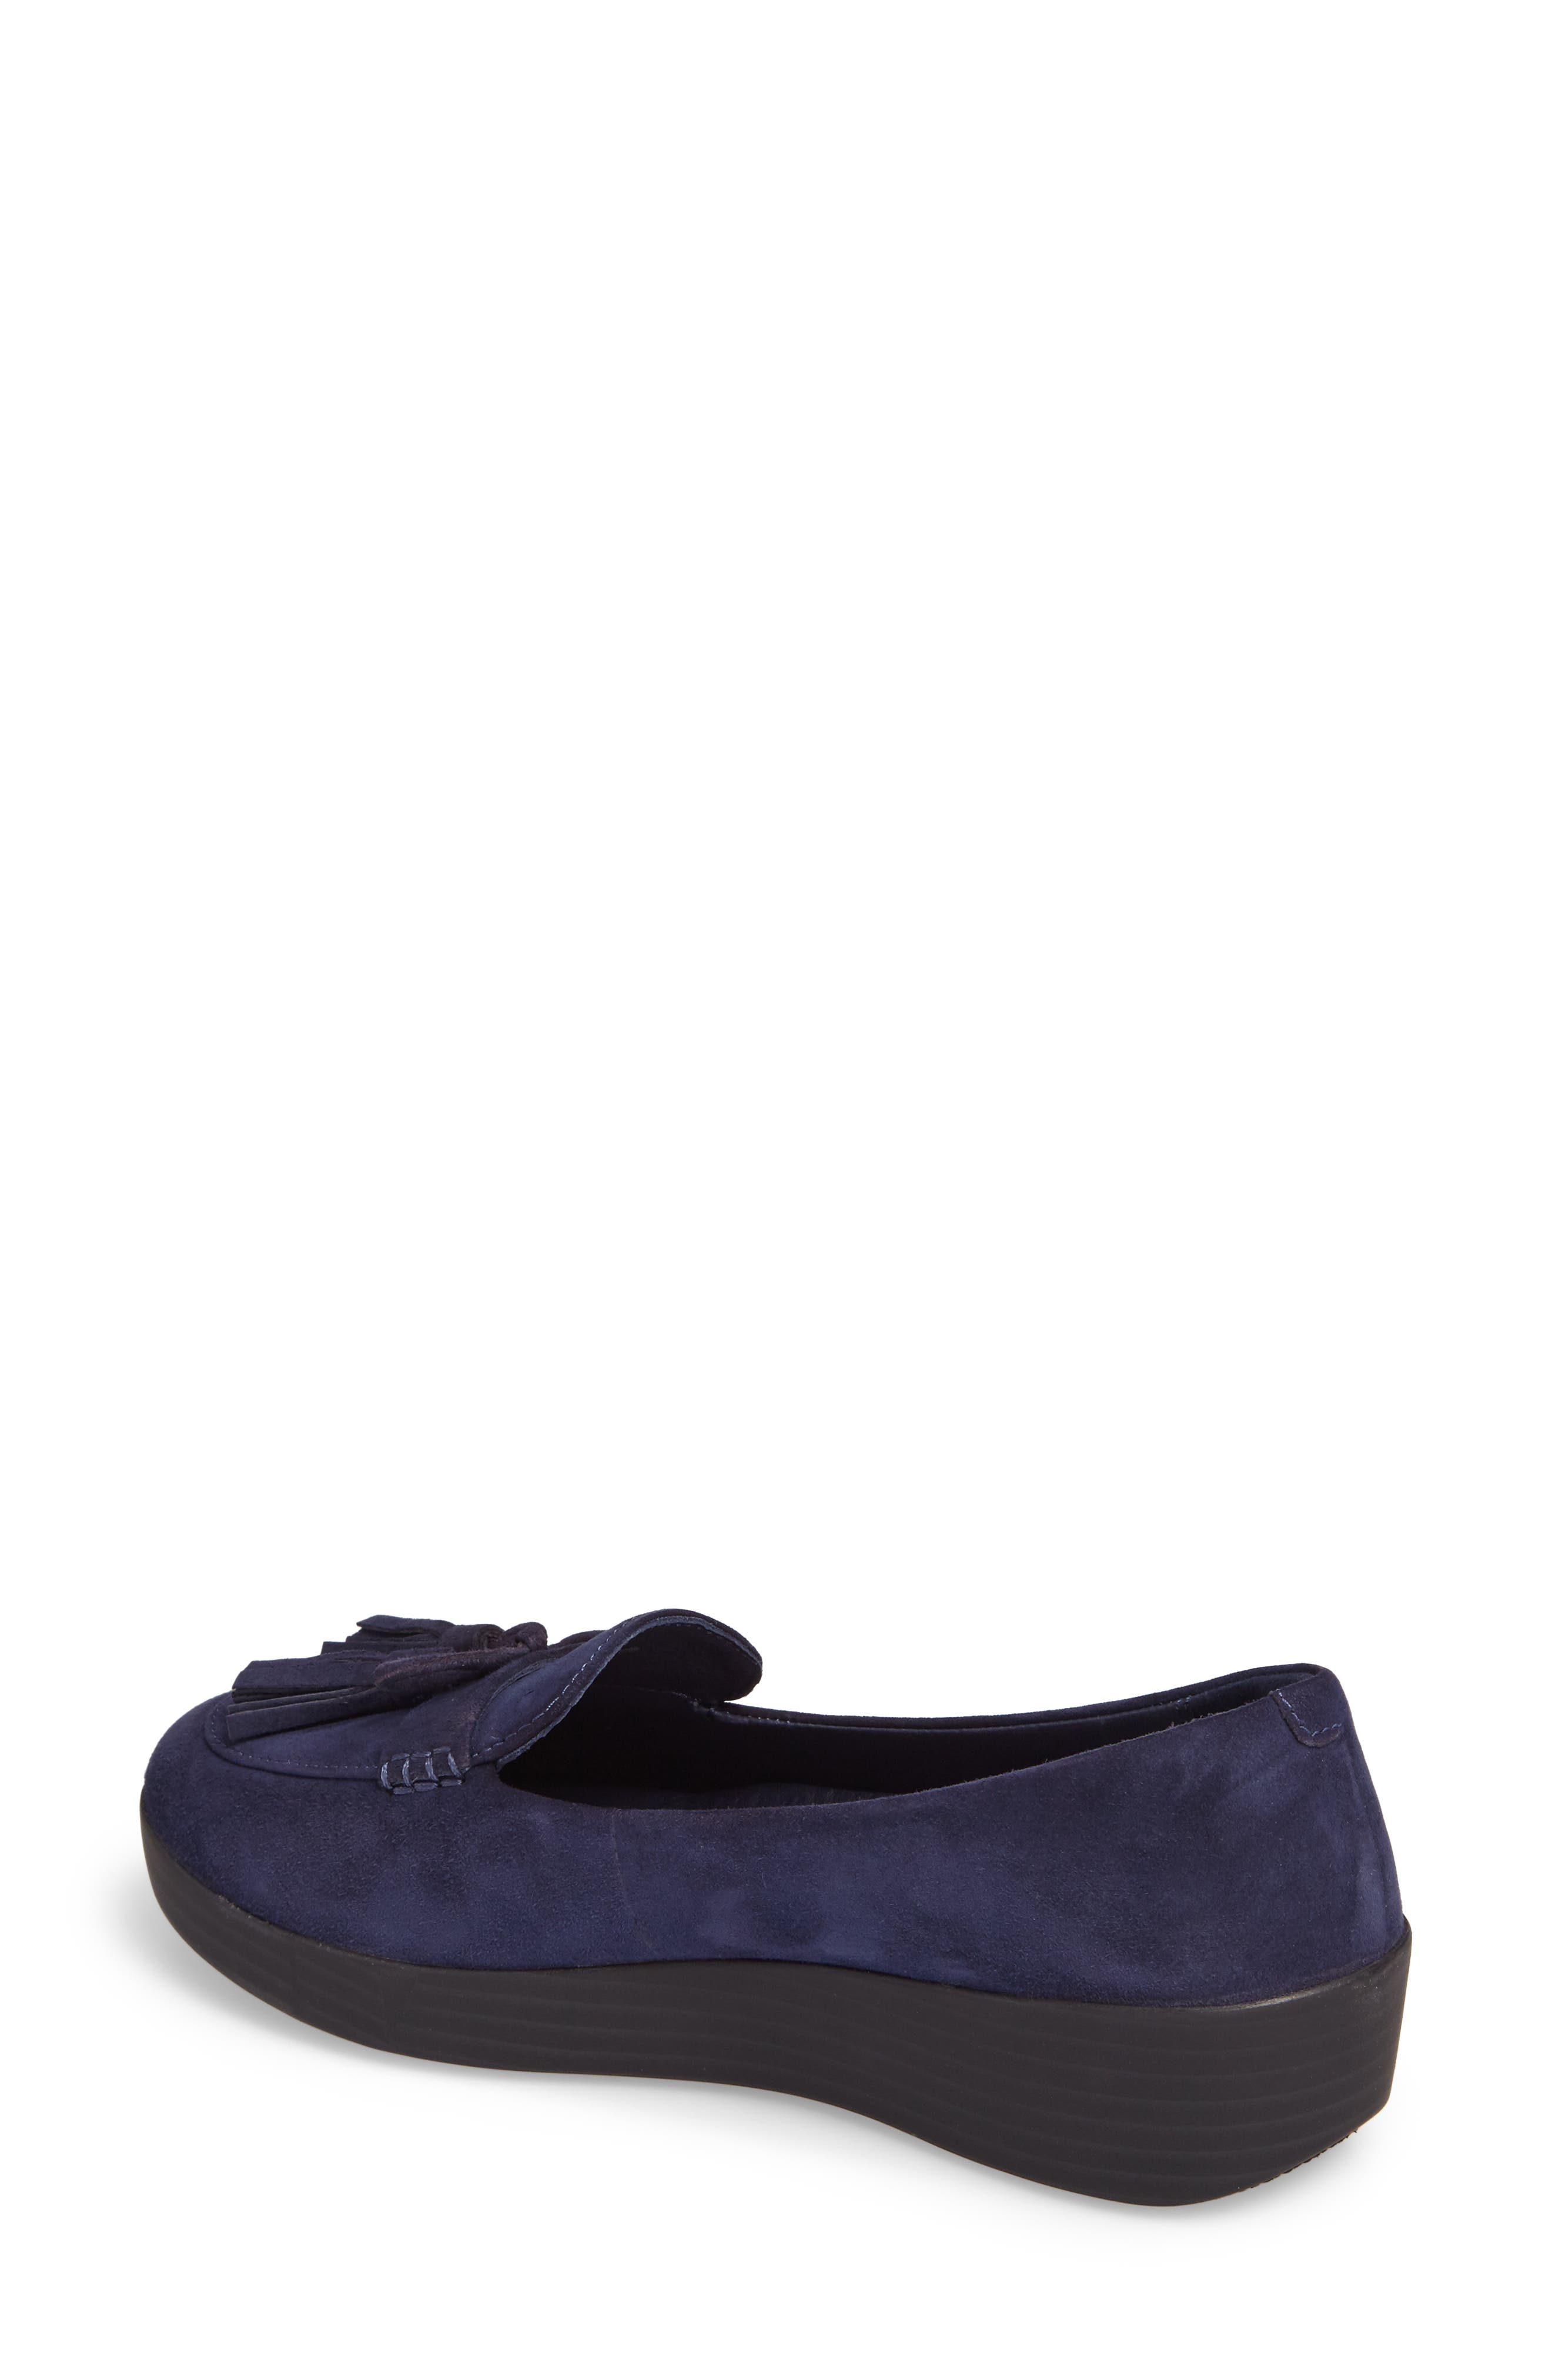 Tassel Bow Sneakerloafer<sup>™</sup> Water Repellent Flat,                             Alternate thumbnail 7, color,